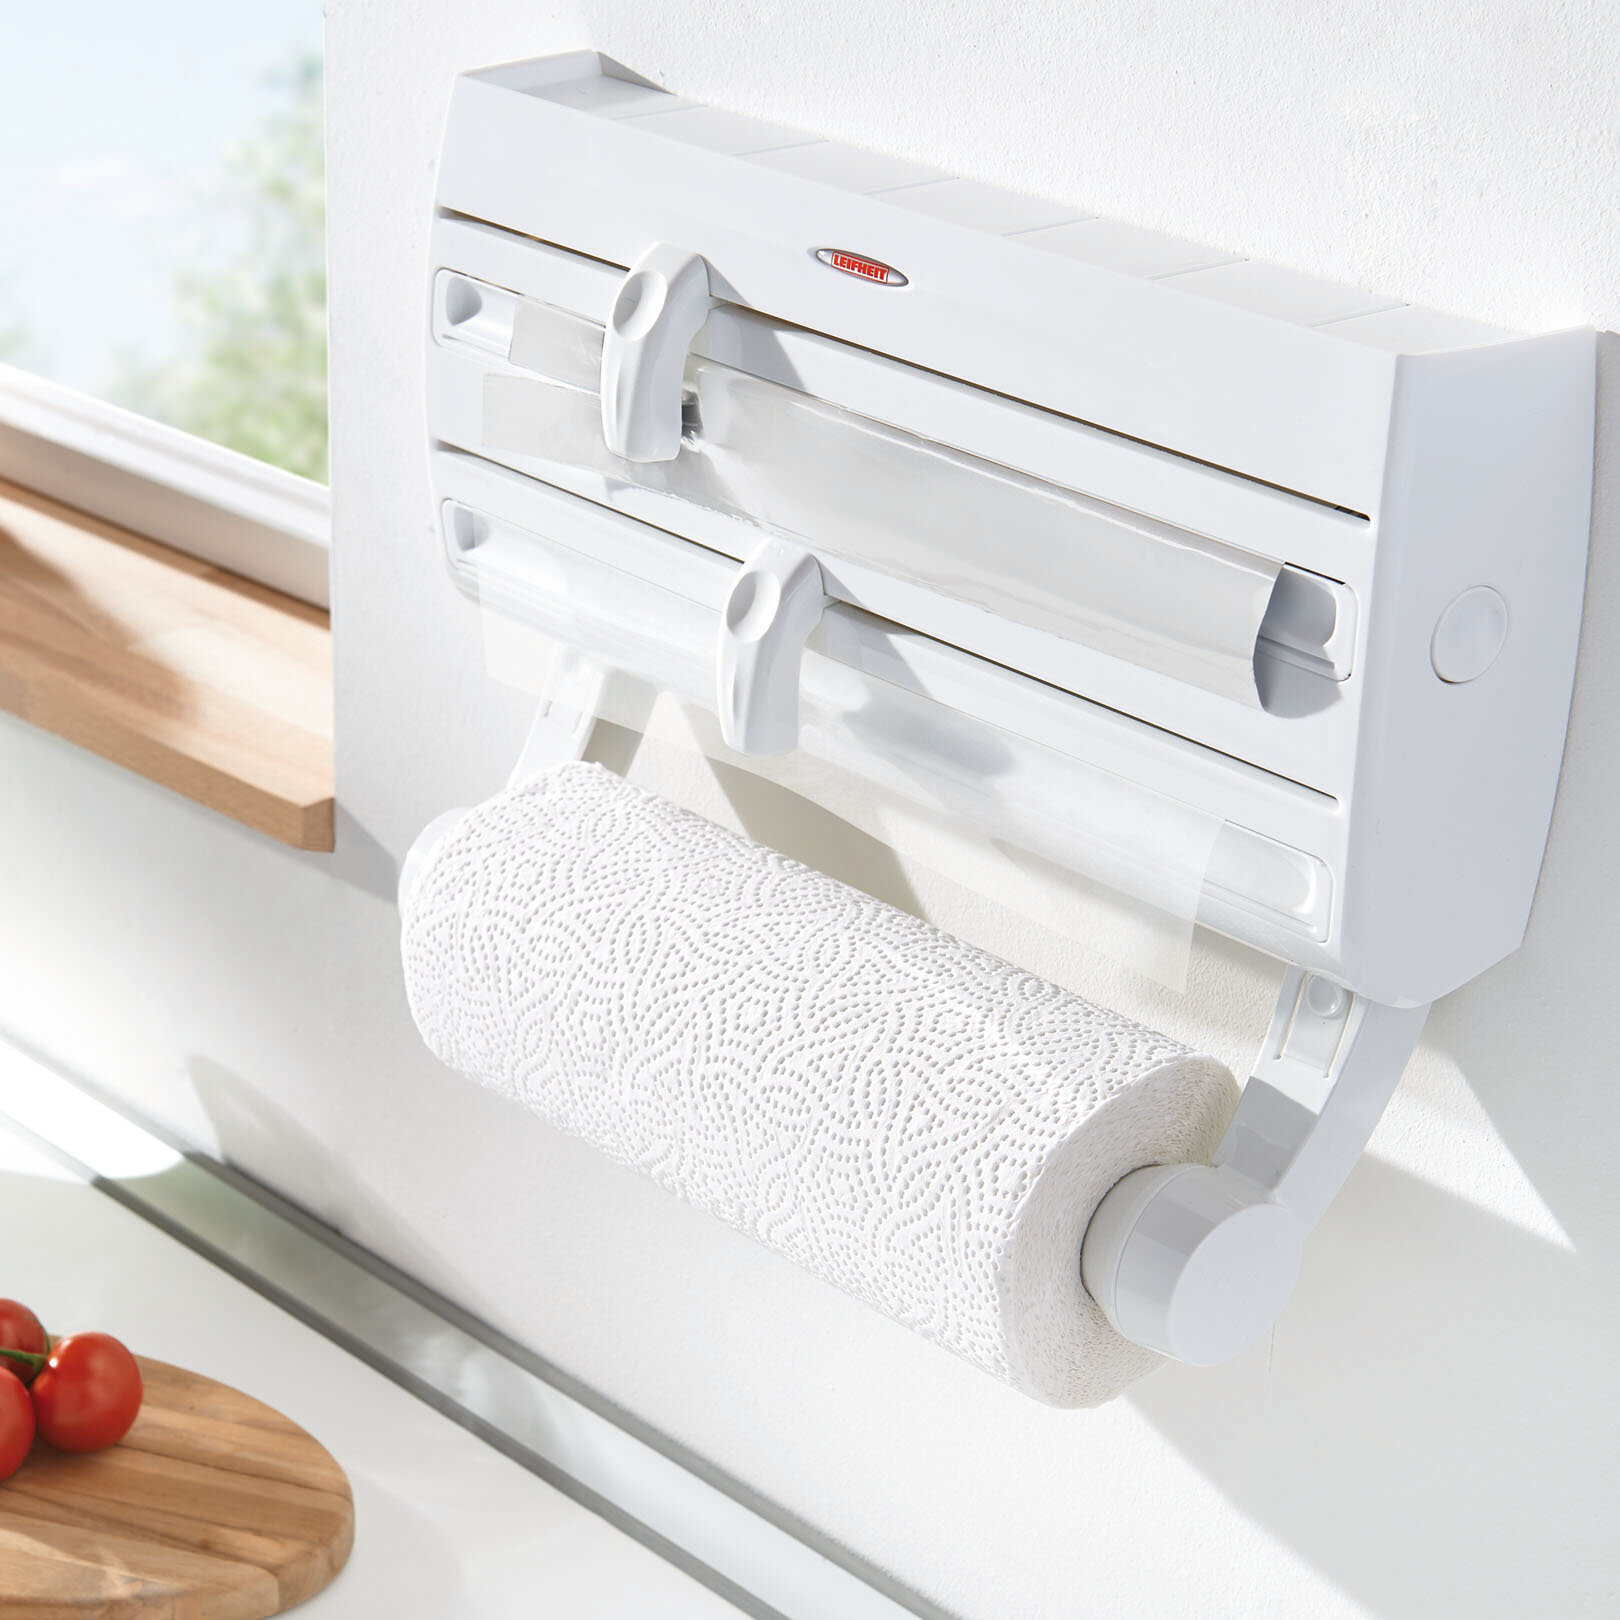 3 Expert Tips To Choose Paper Towel Napkin Holders Visualhunt